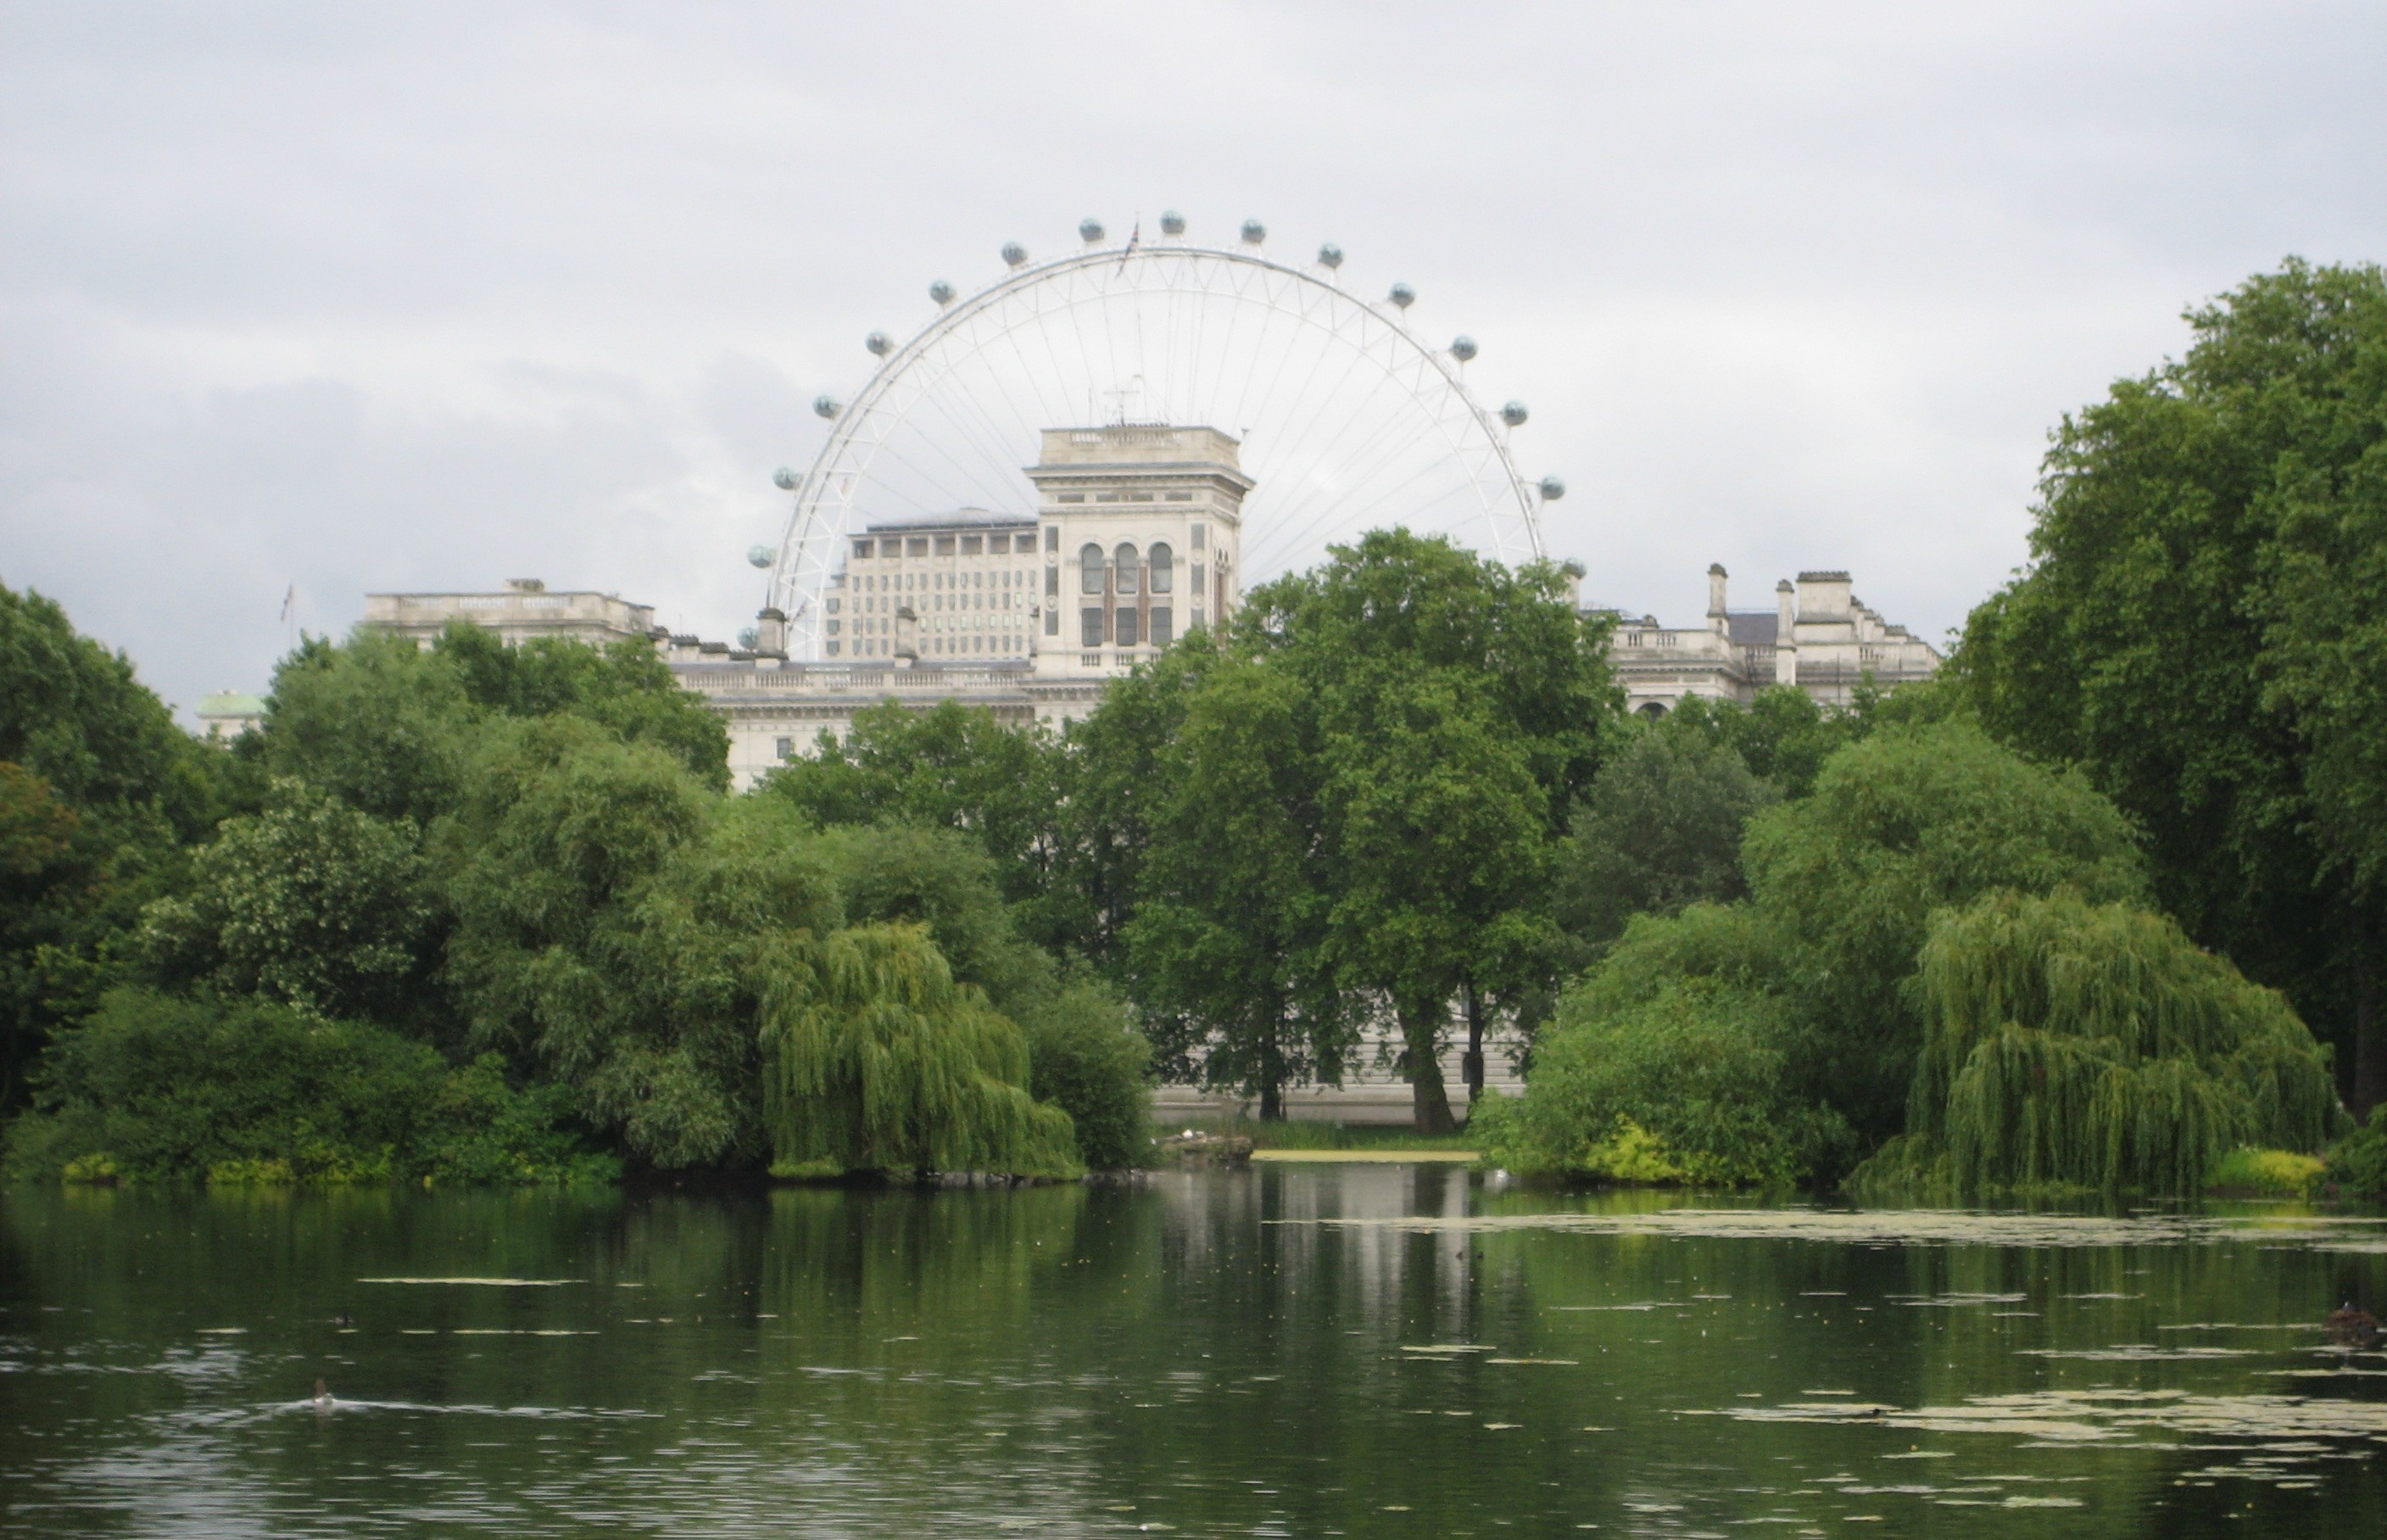 London Eye tucked behind one of the city's many parks.